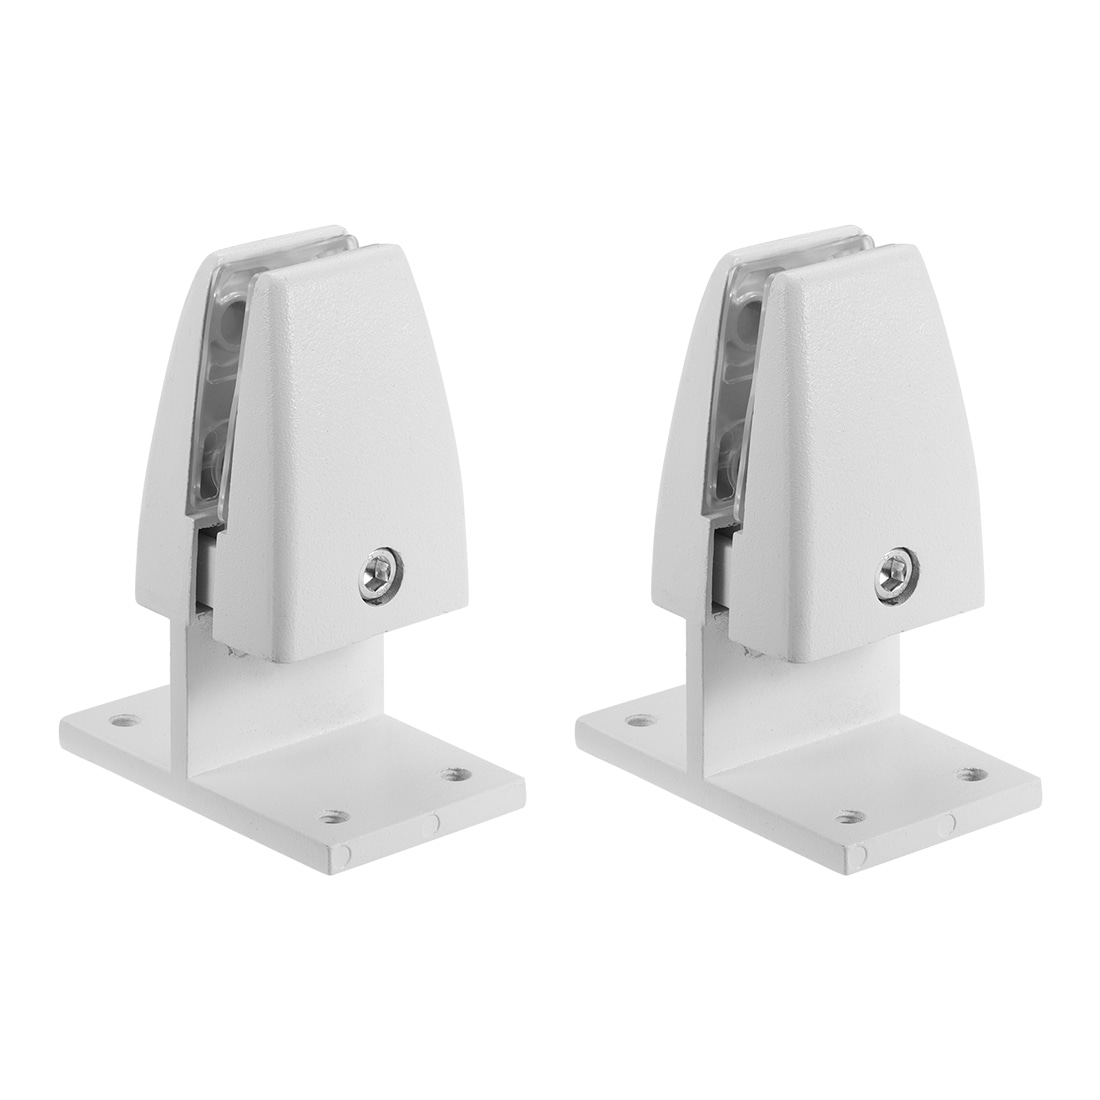 CALIDAKA 2pcs//Set Screen Partition Clip Bracket Screen Holder Fixed Desk Divider Clamp Desktop Partition Support Holder Table Separator Board Clamp for Office Anti Rust Aluminium Alloy